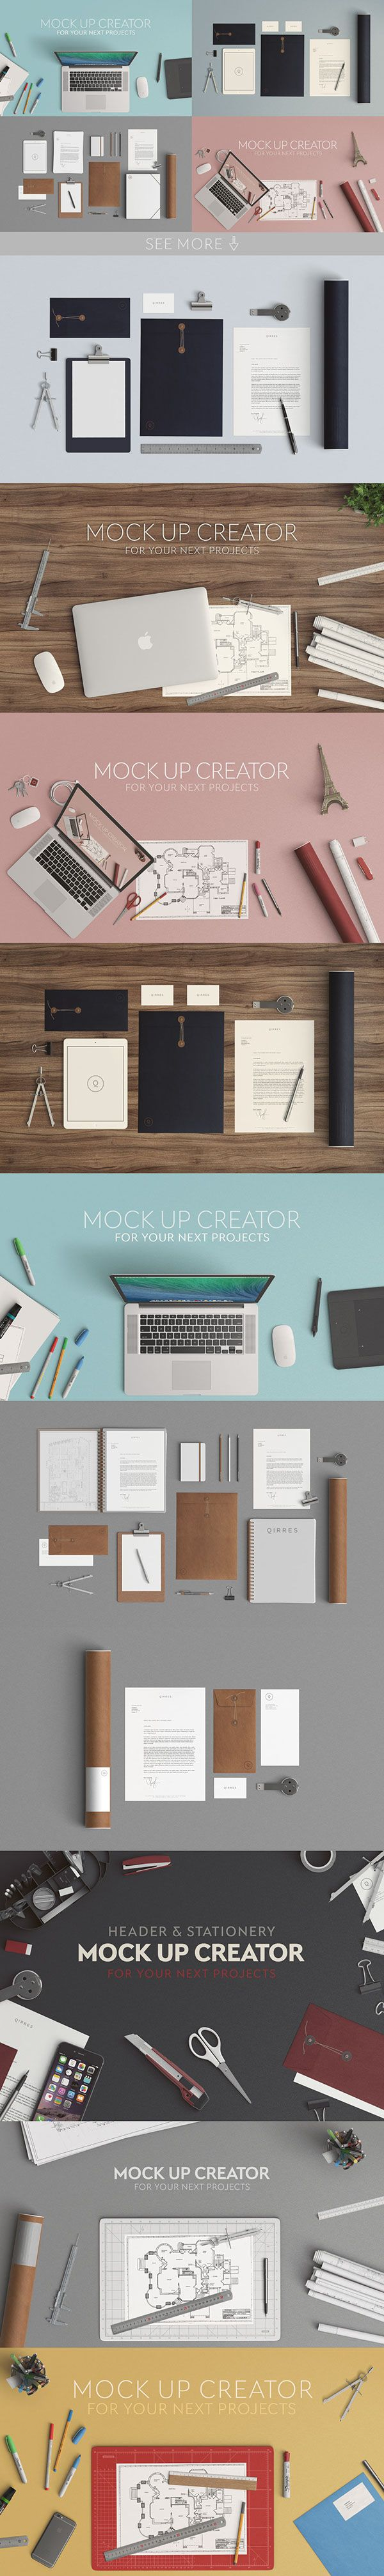 Header & Stationery Mock Up Creator on Behance